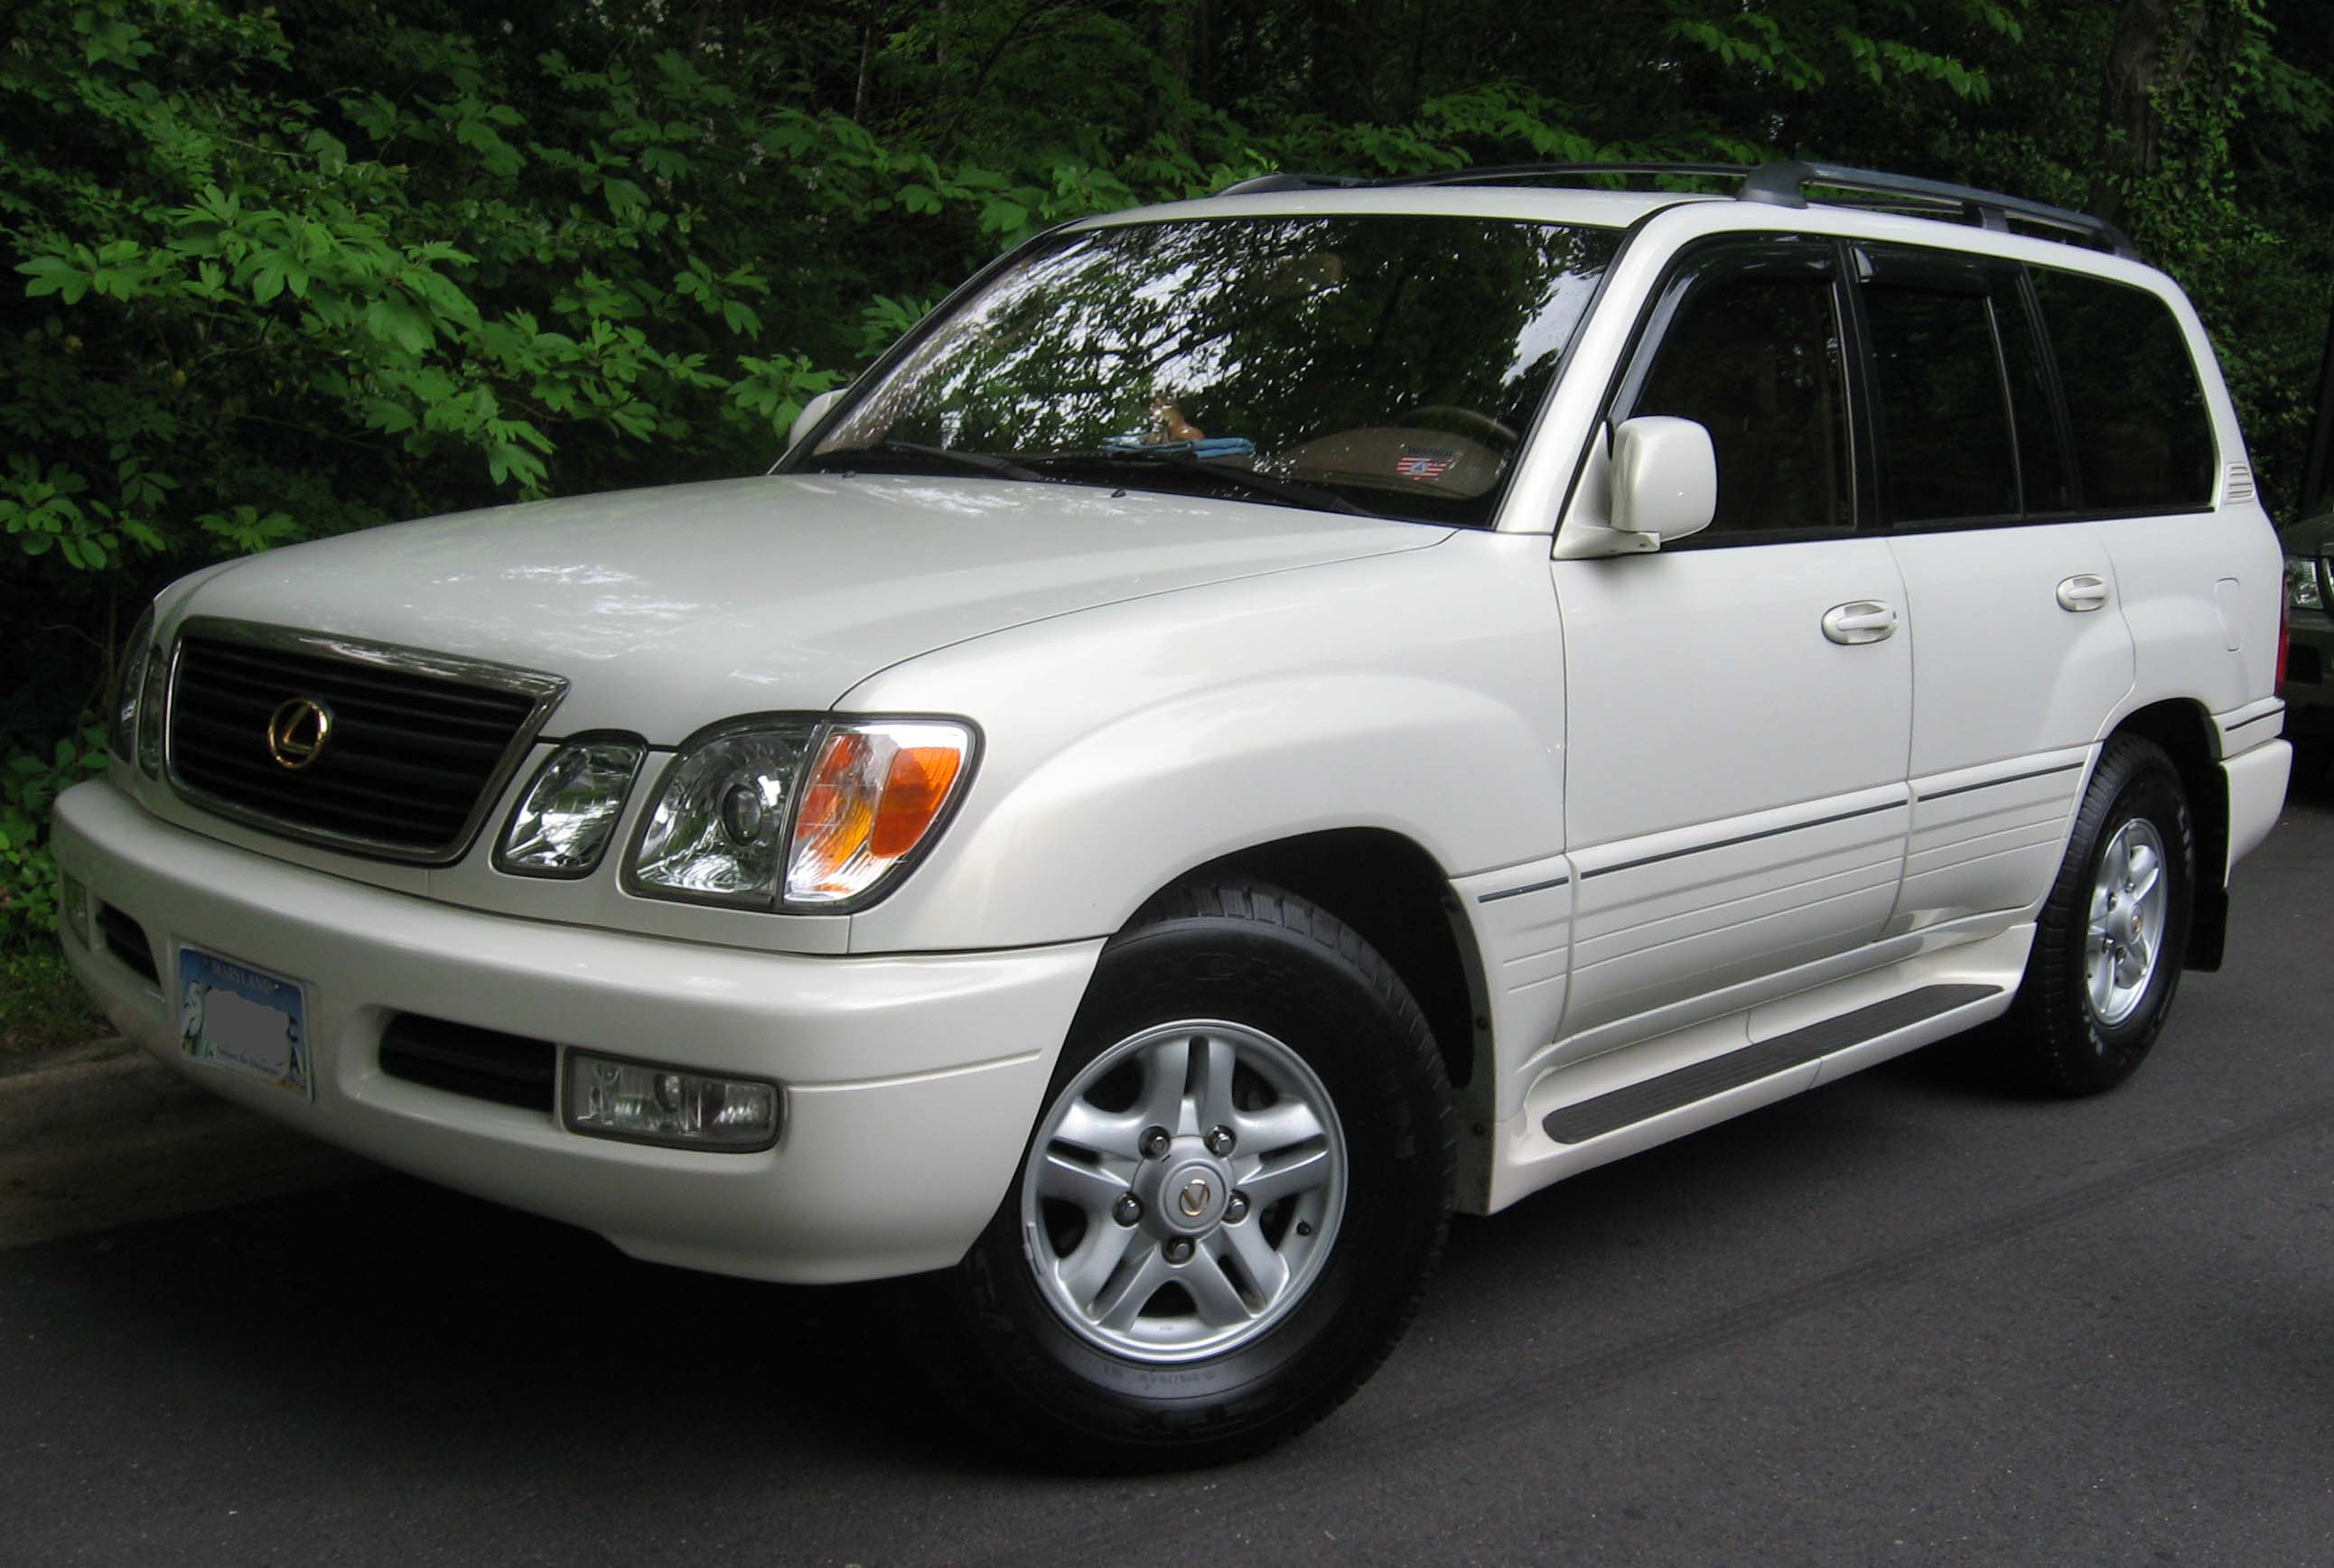 Lexus LX 470 Free Picture Download Image Of Wallpaper